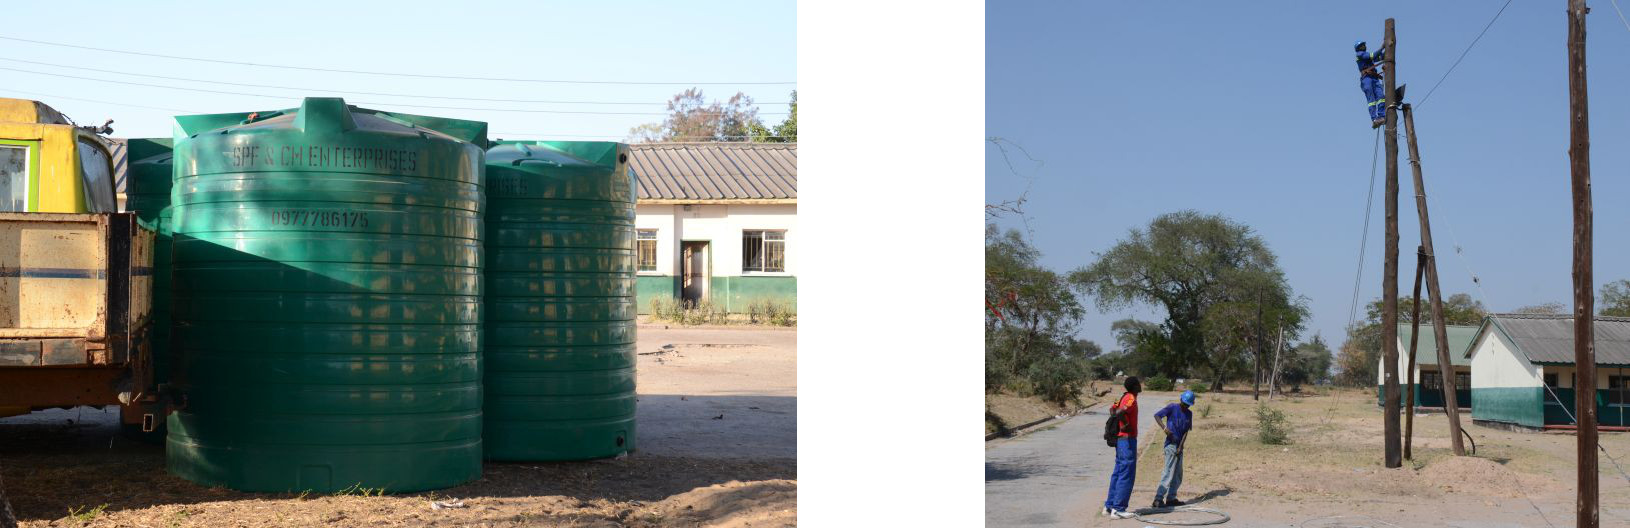 August 2015: New watercontainers (left) and celectricity poles (PTA projects)